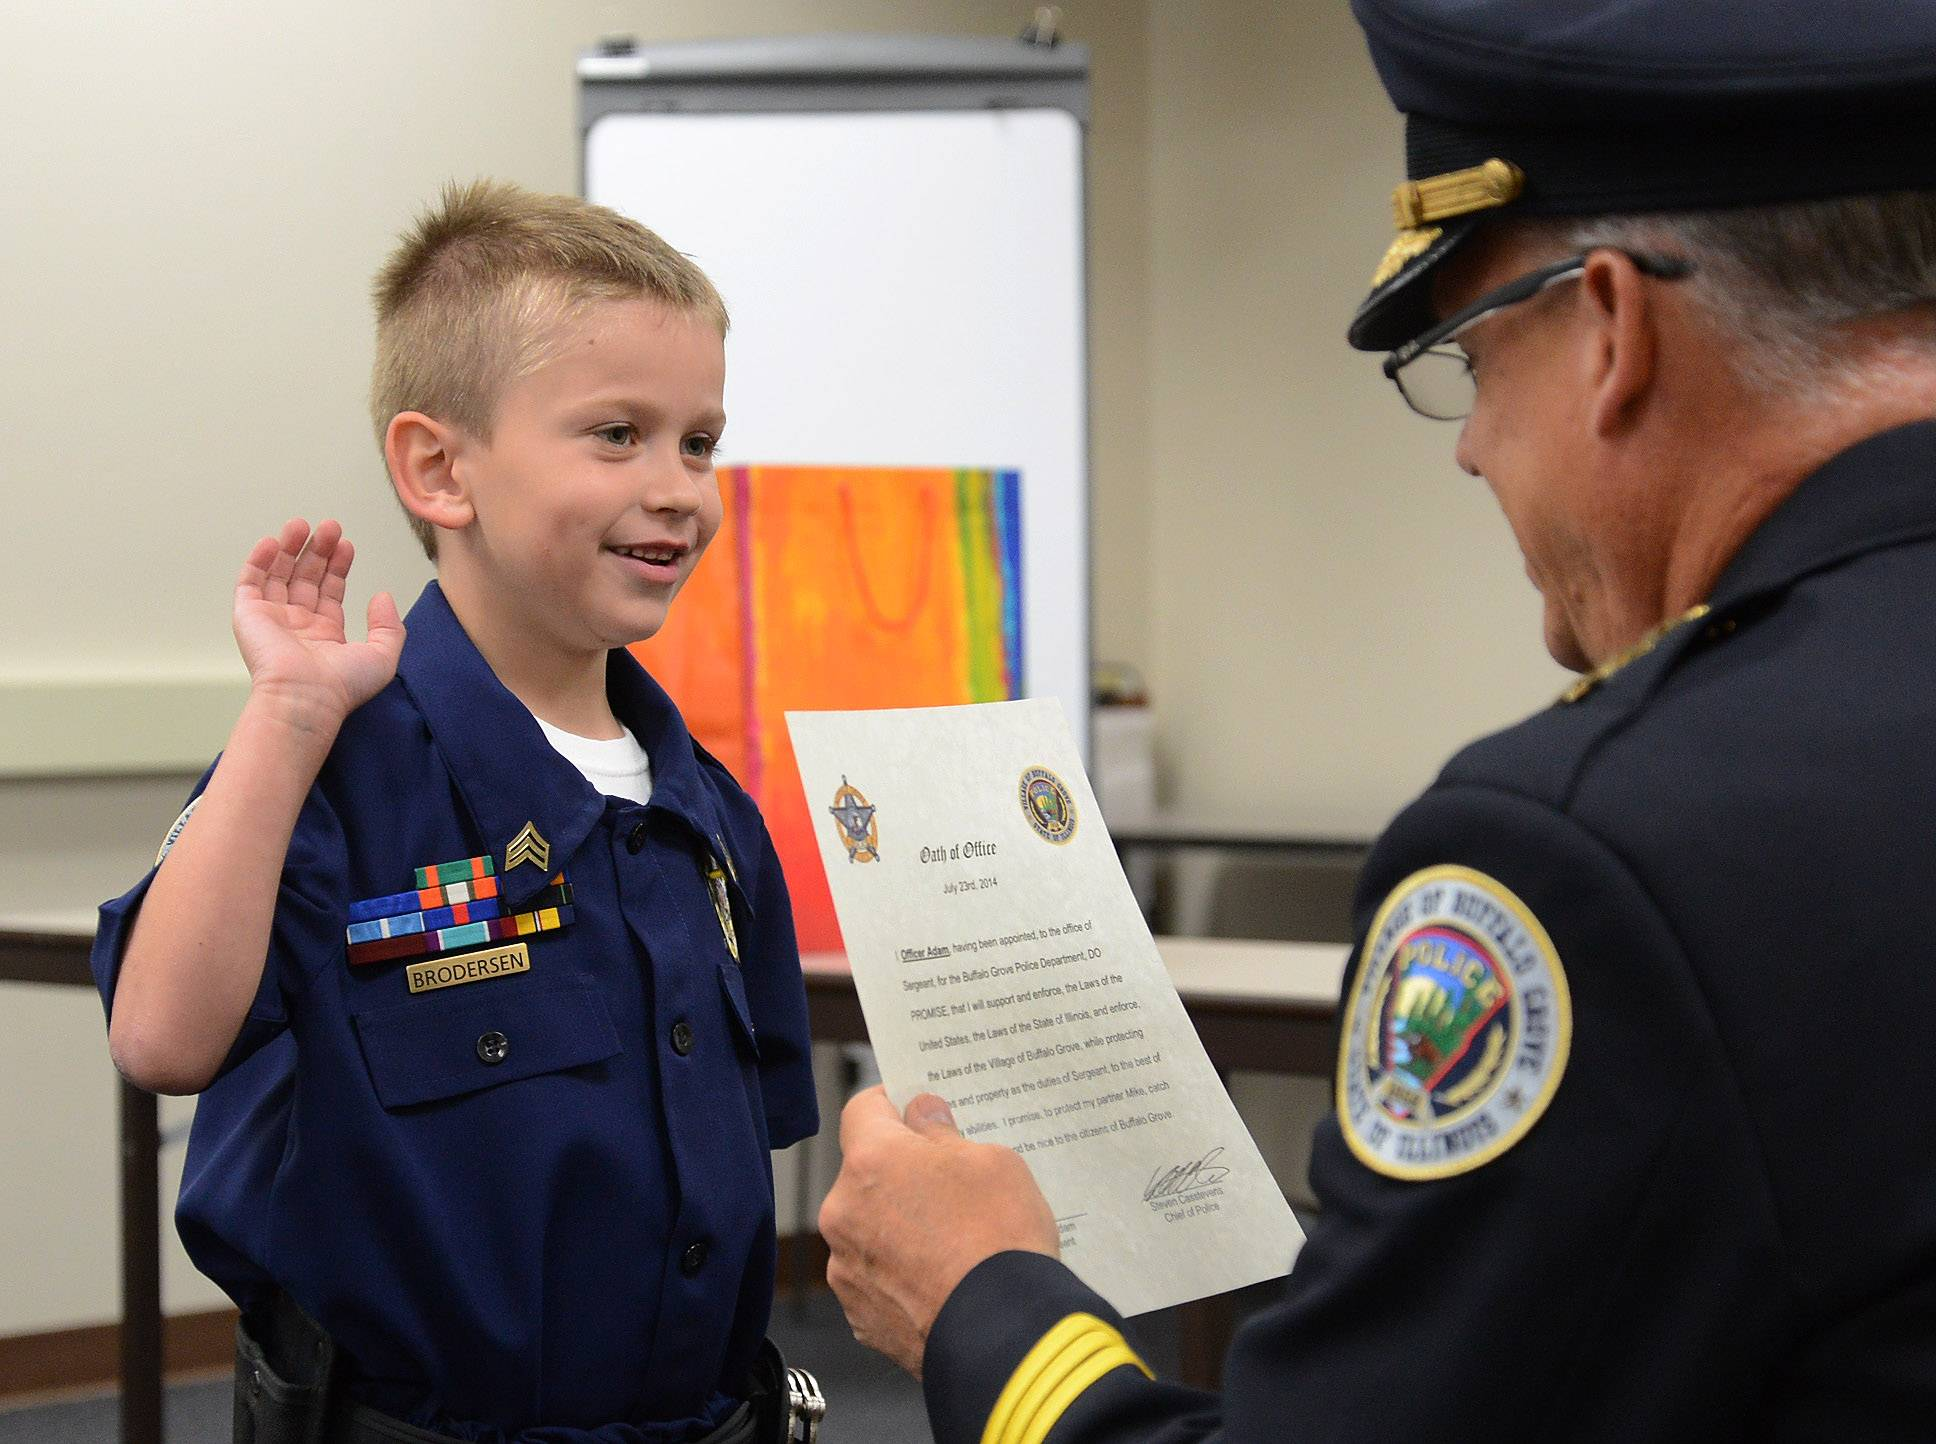 Images: Cop for a Day